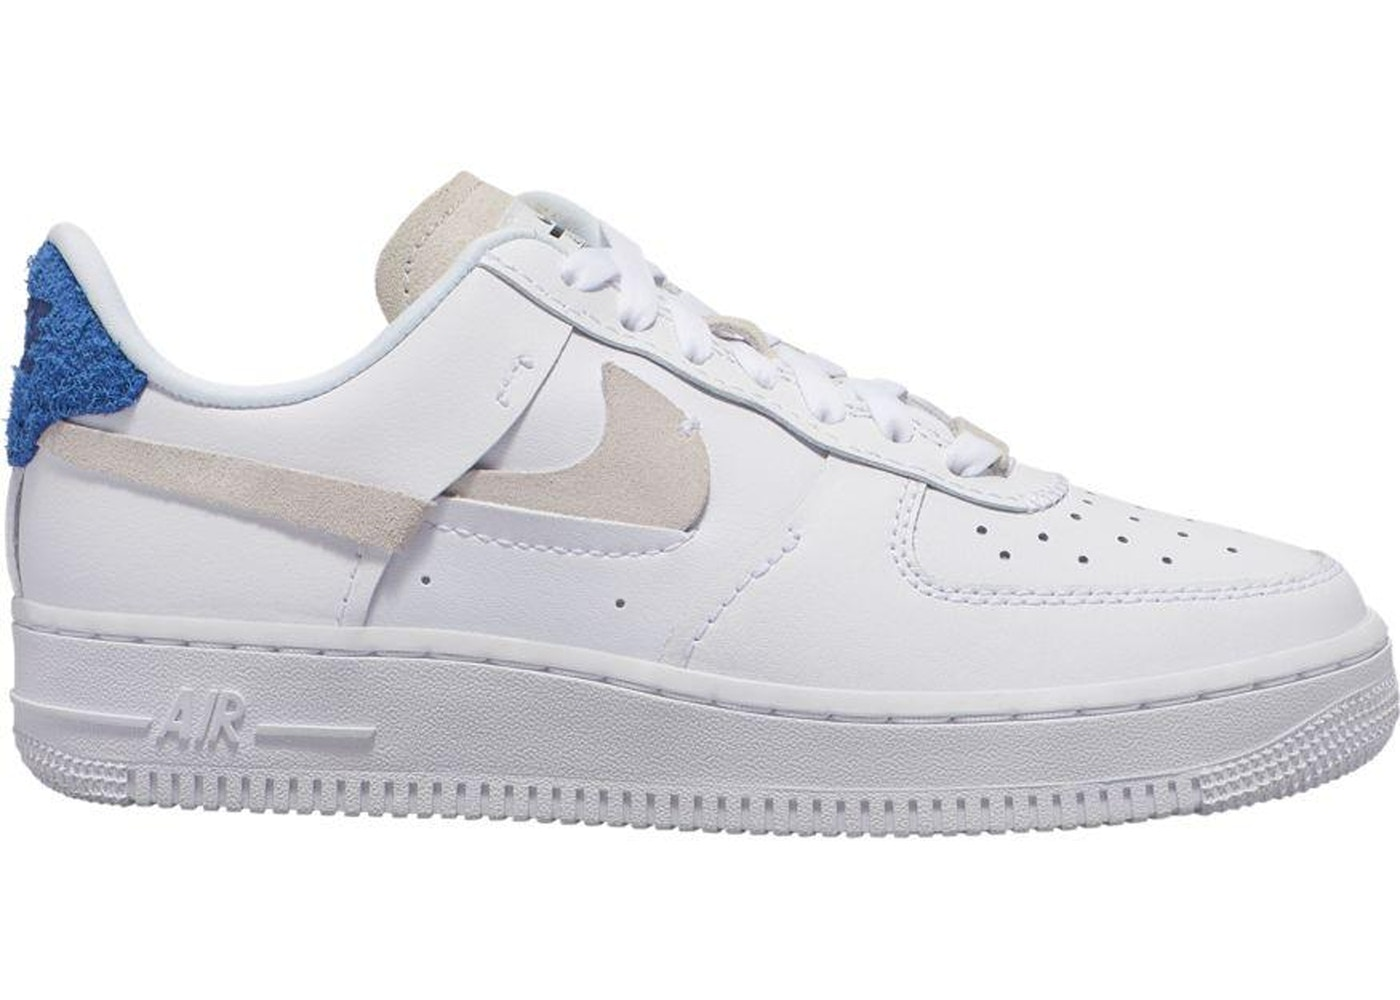 Air Force 1 LX wmns inside out vandalised